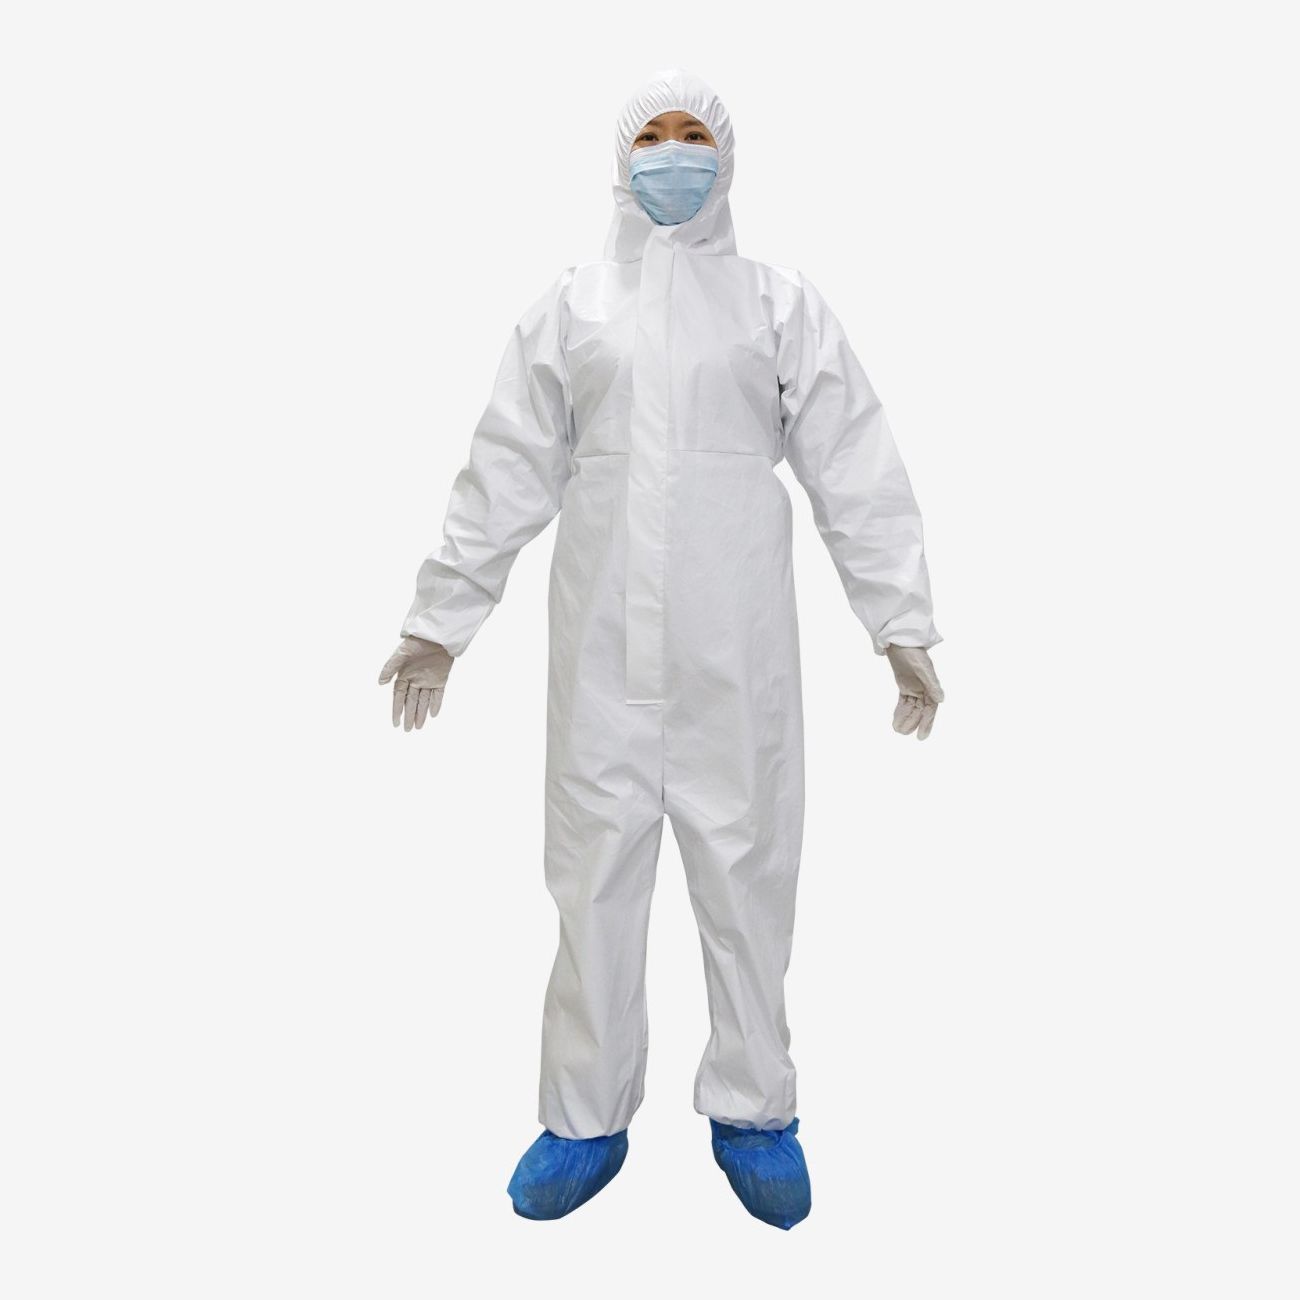 COVID-19 Disposable Isolation coveralls